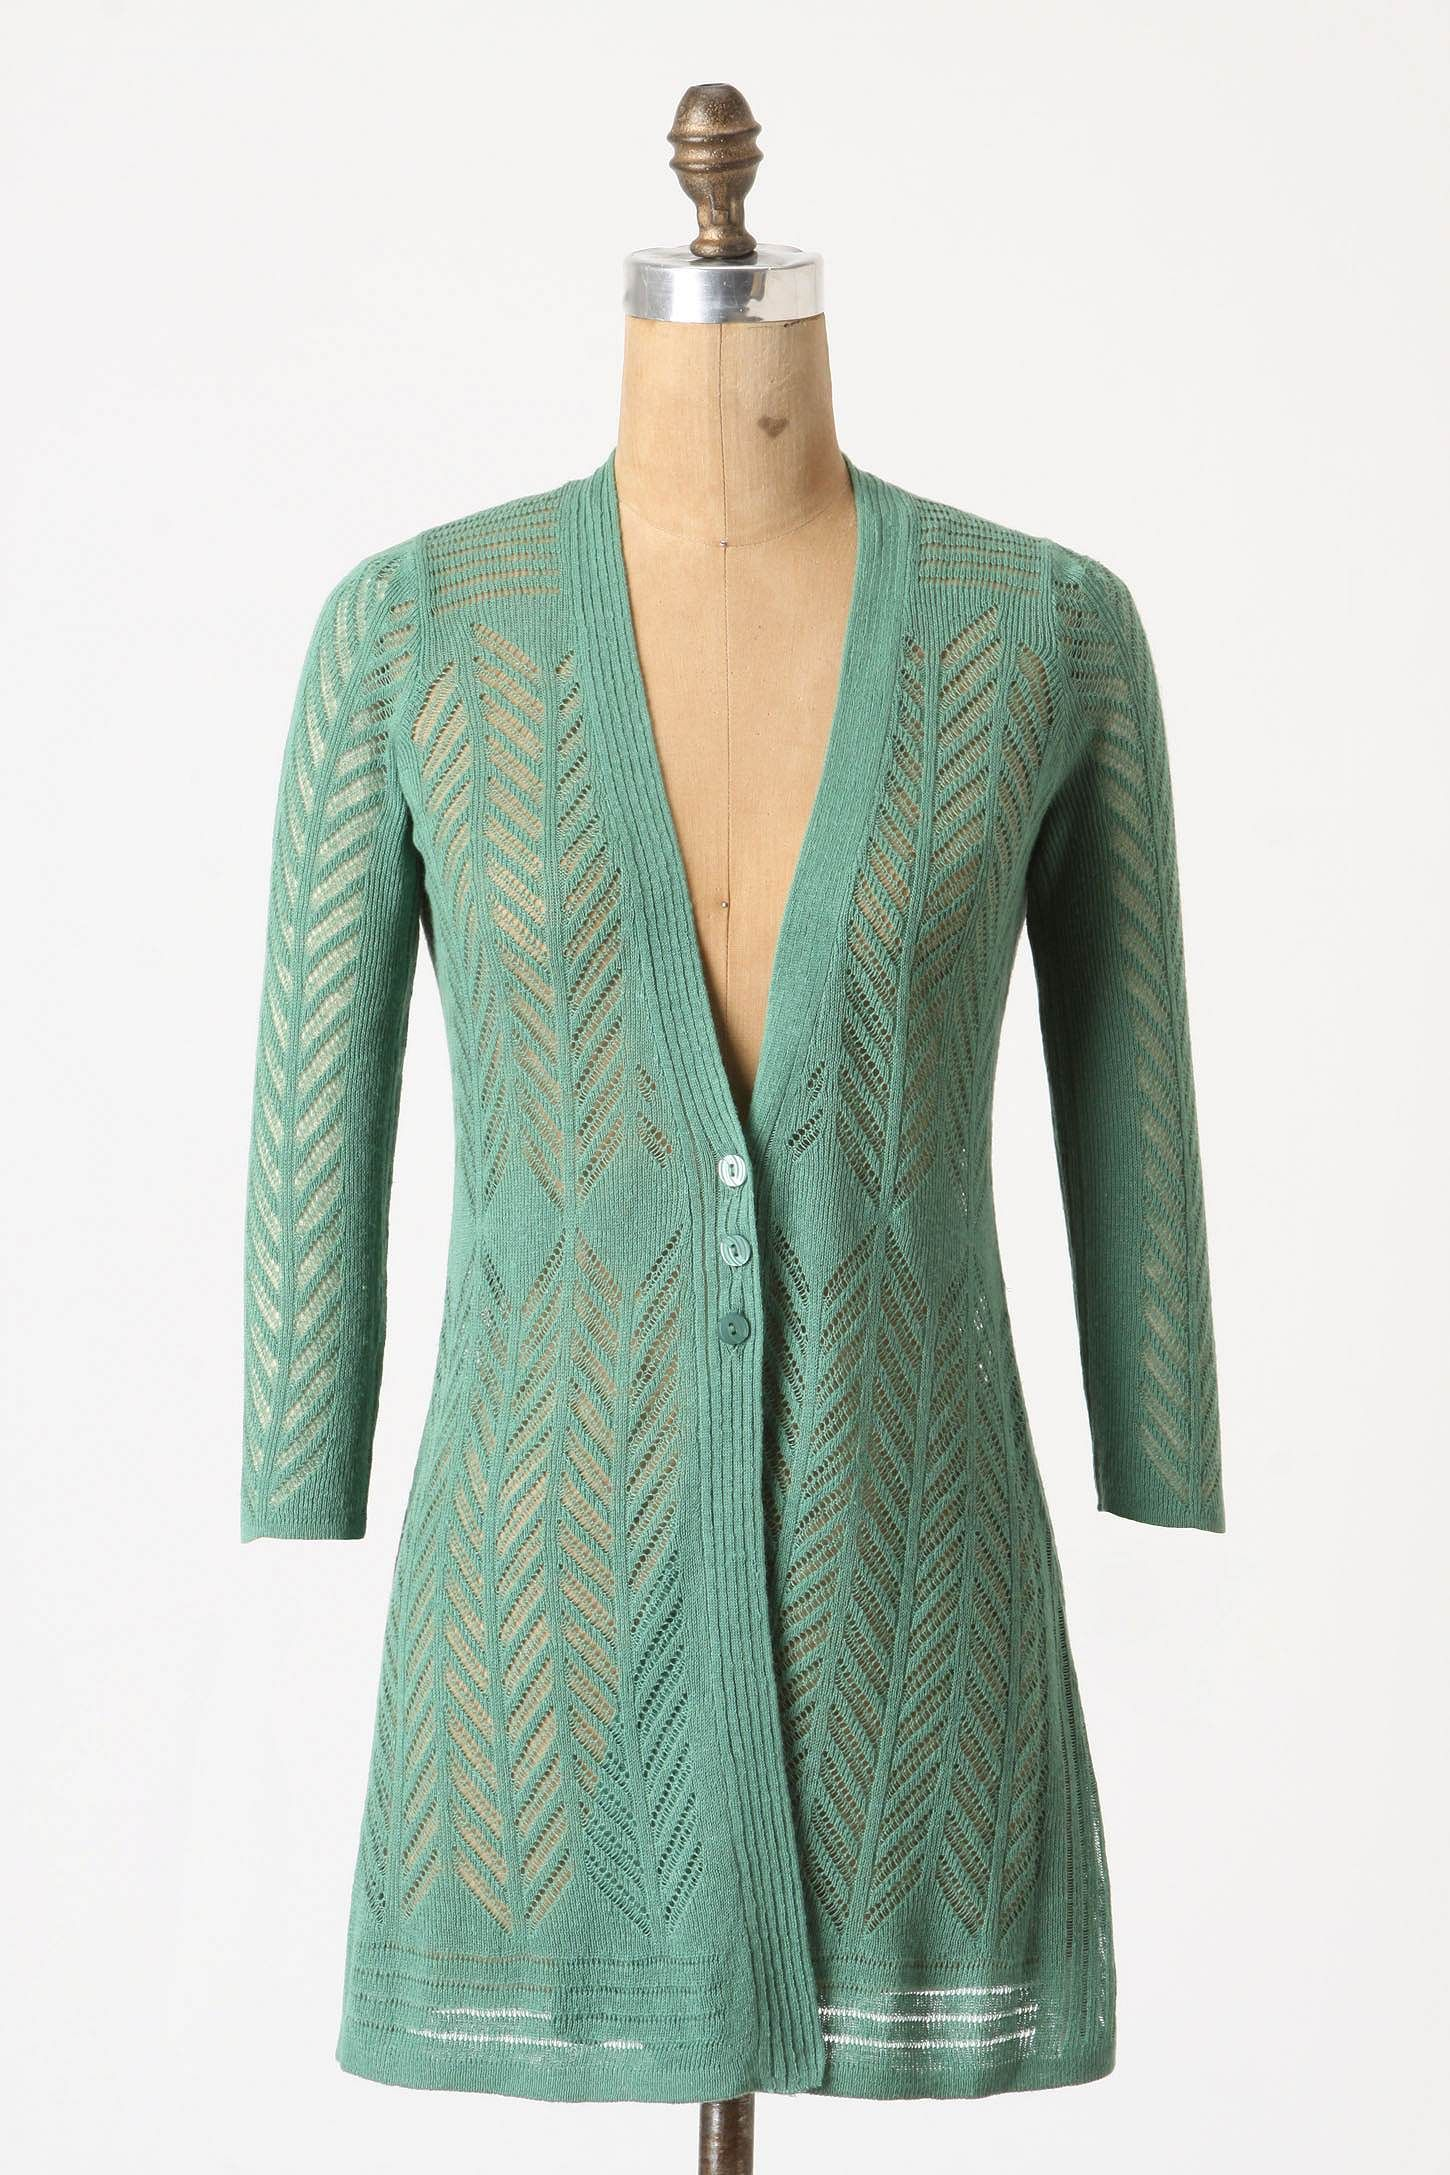 Trifecta Cardigan by Guinevere - at Anthropologie. I want to knit ...